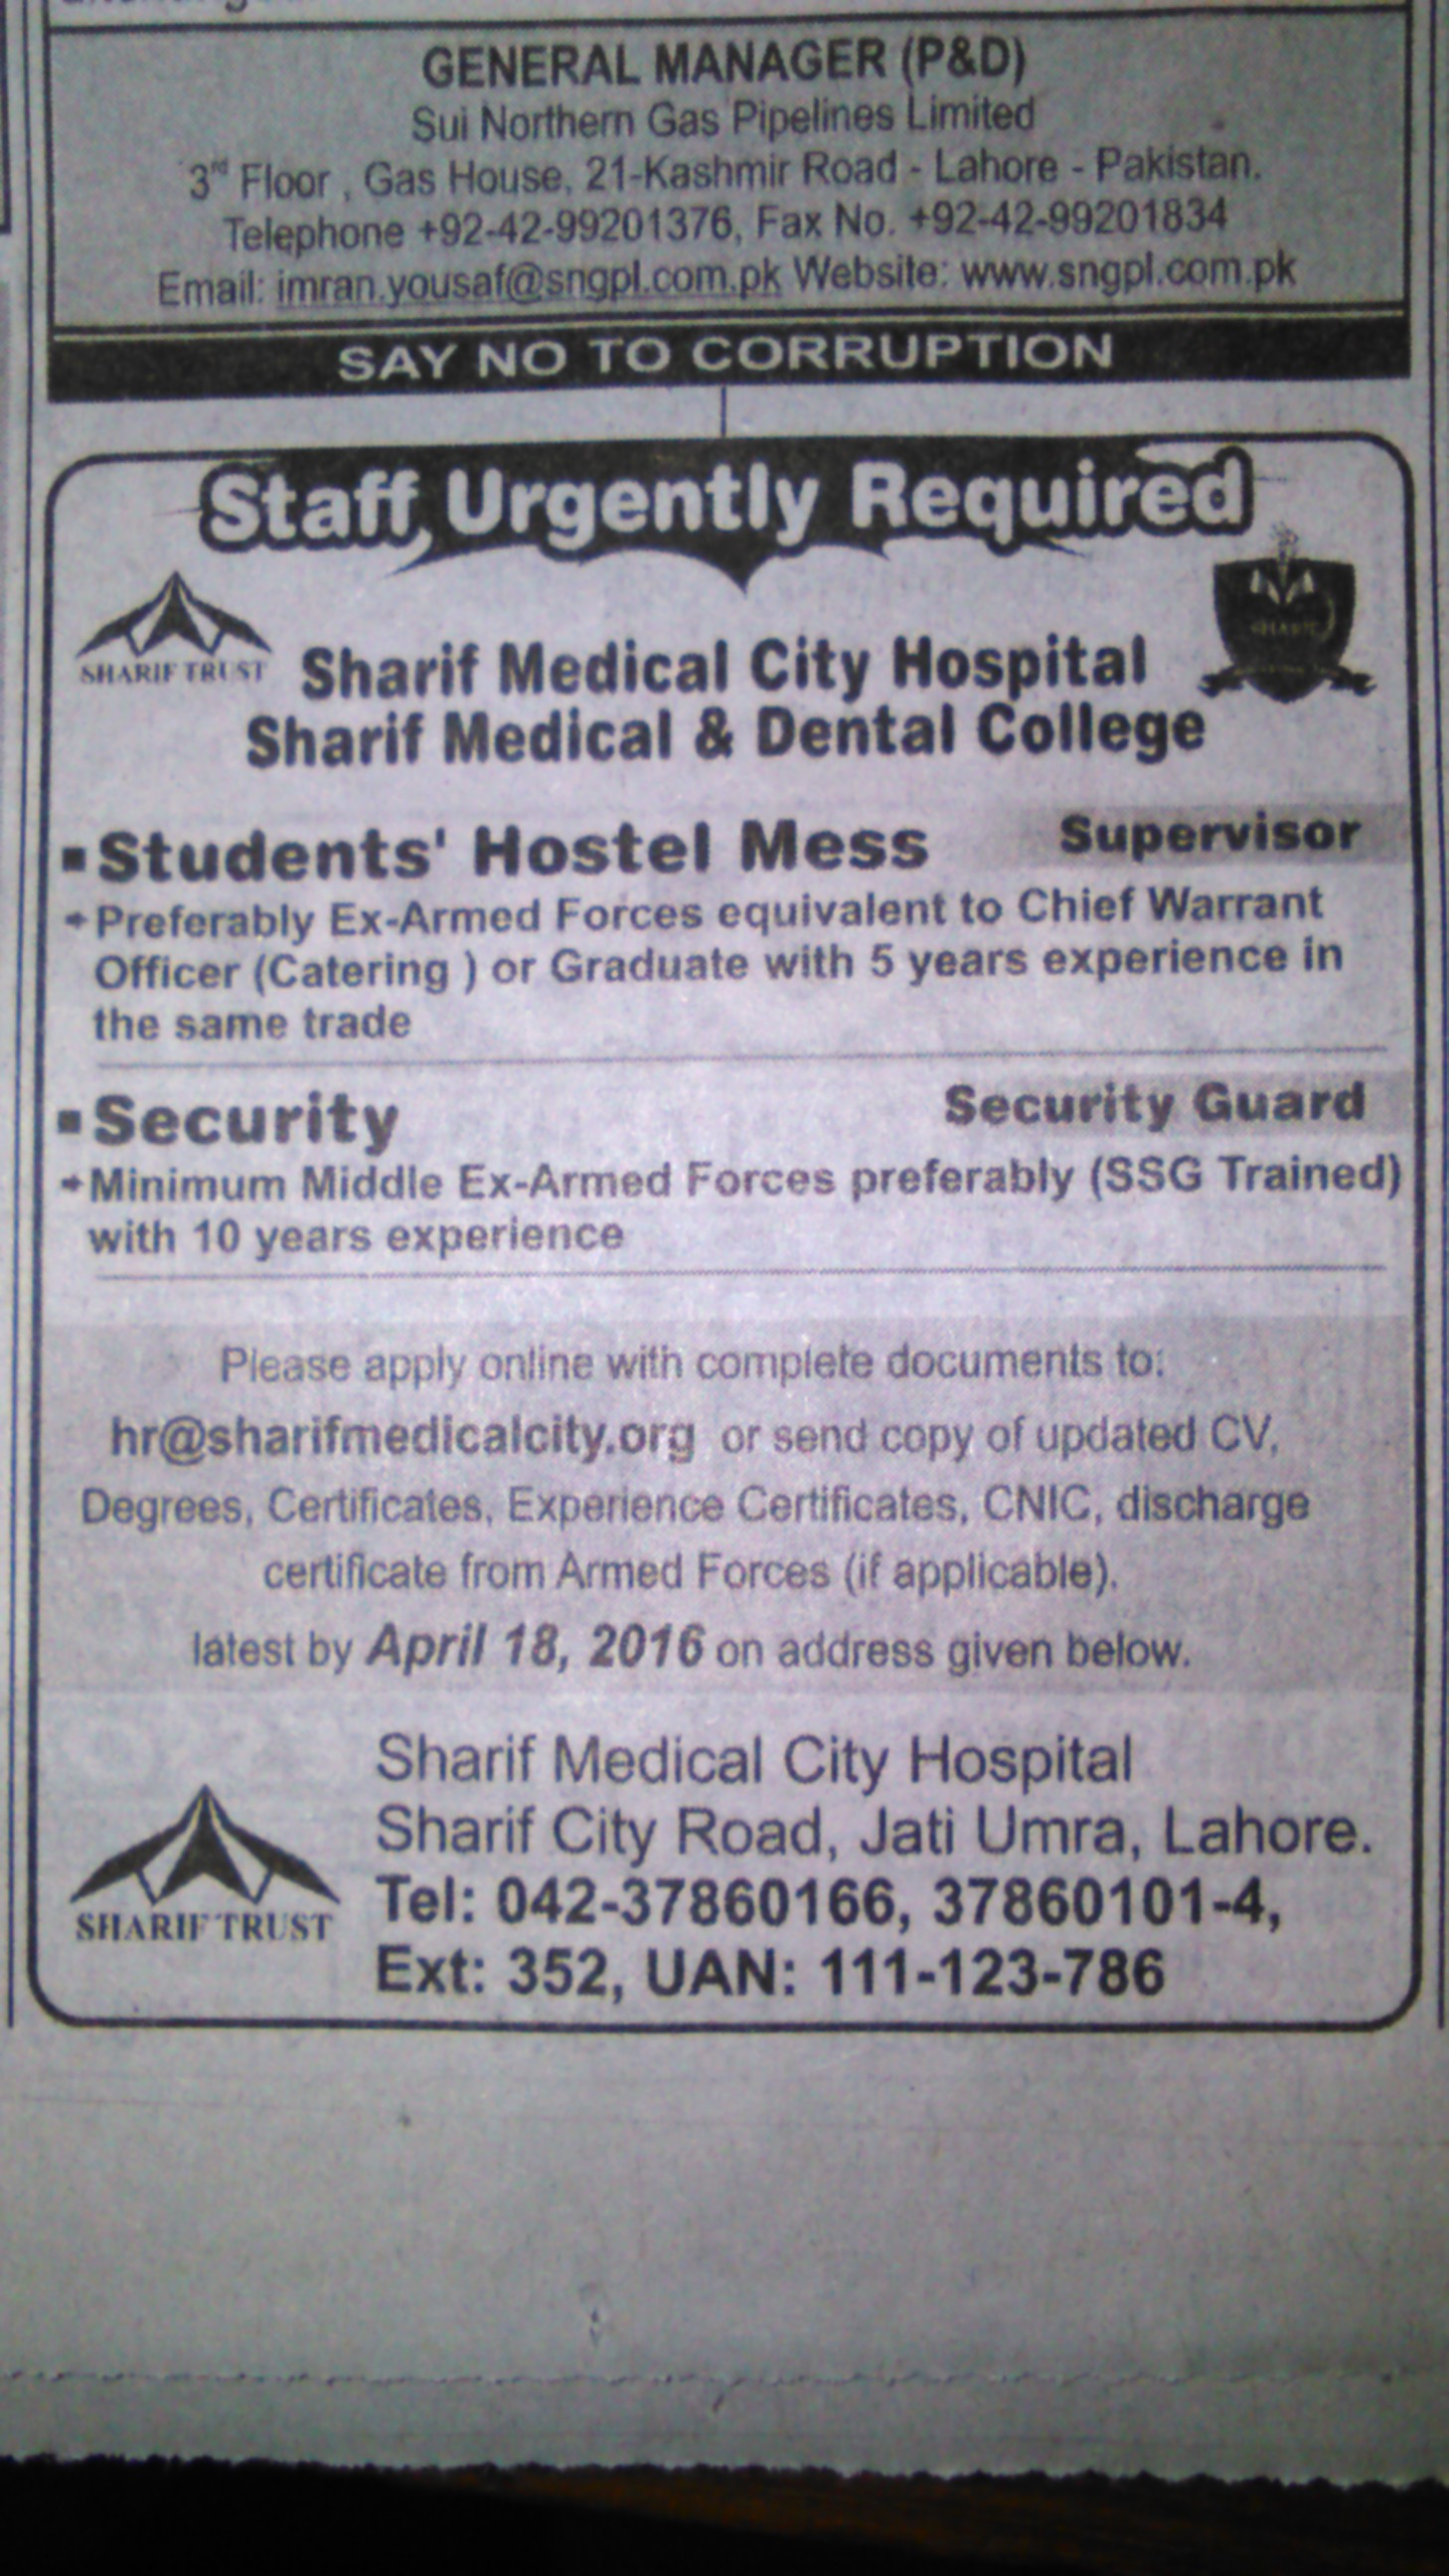 Sharif Medical and Dental College Staff Urgently Required